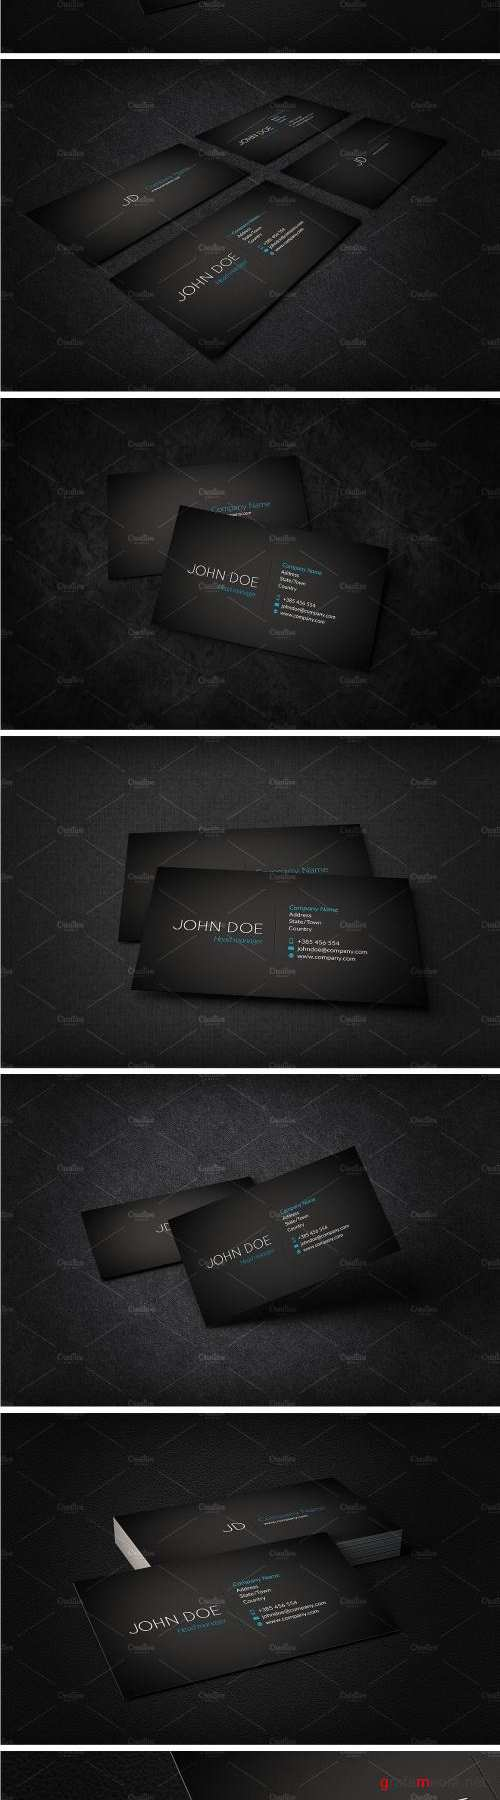 Business Card Mockup - 2181562